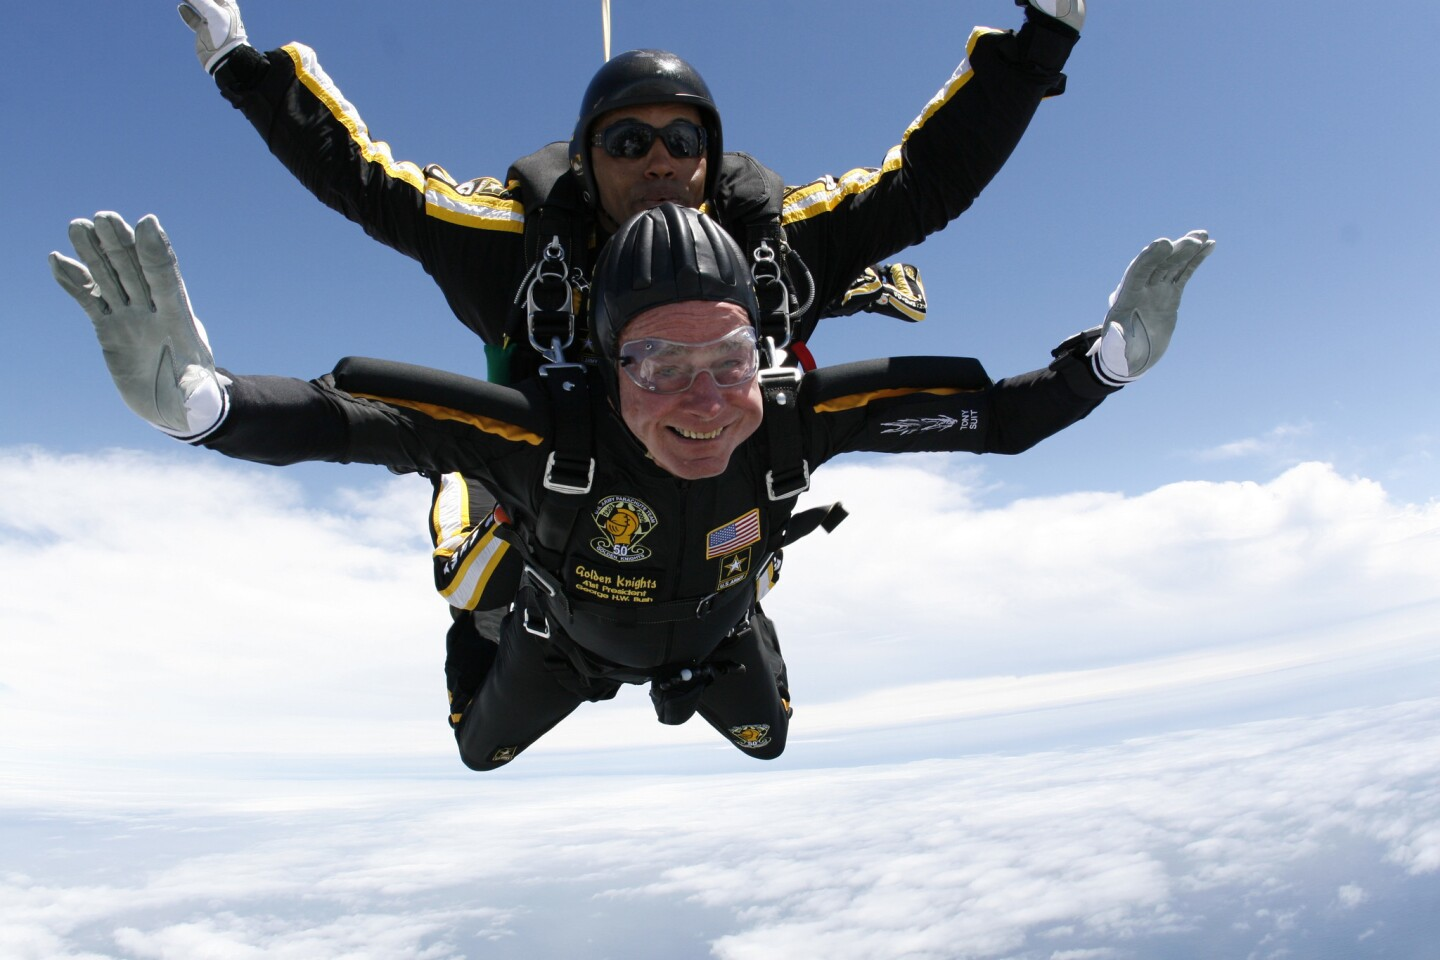 George H.W. Bush celebrates his 85th birthday with a parachute jump over Kennebunkport, Maine.